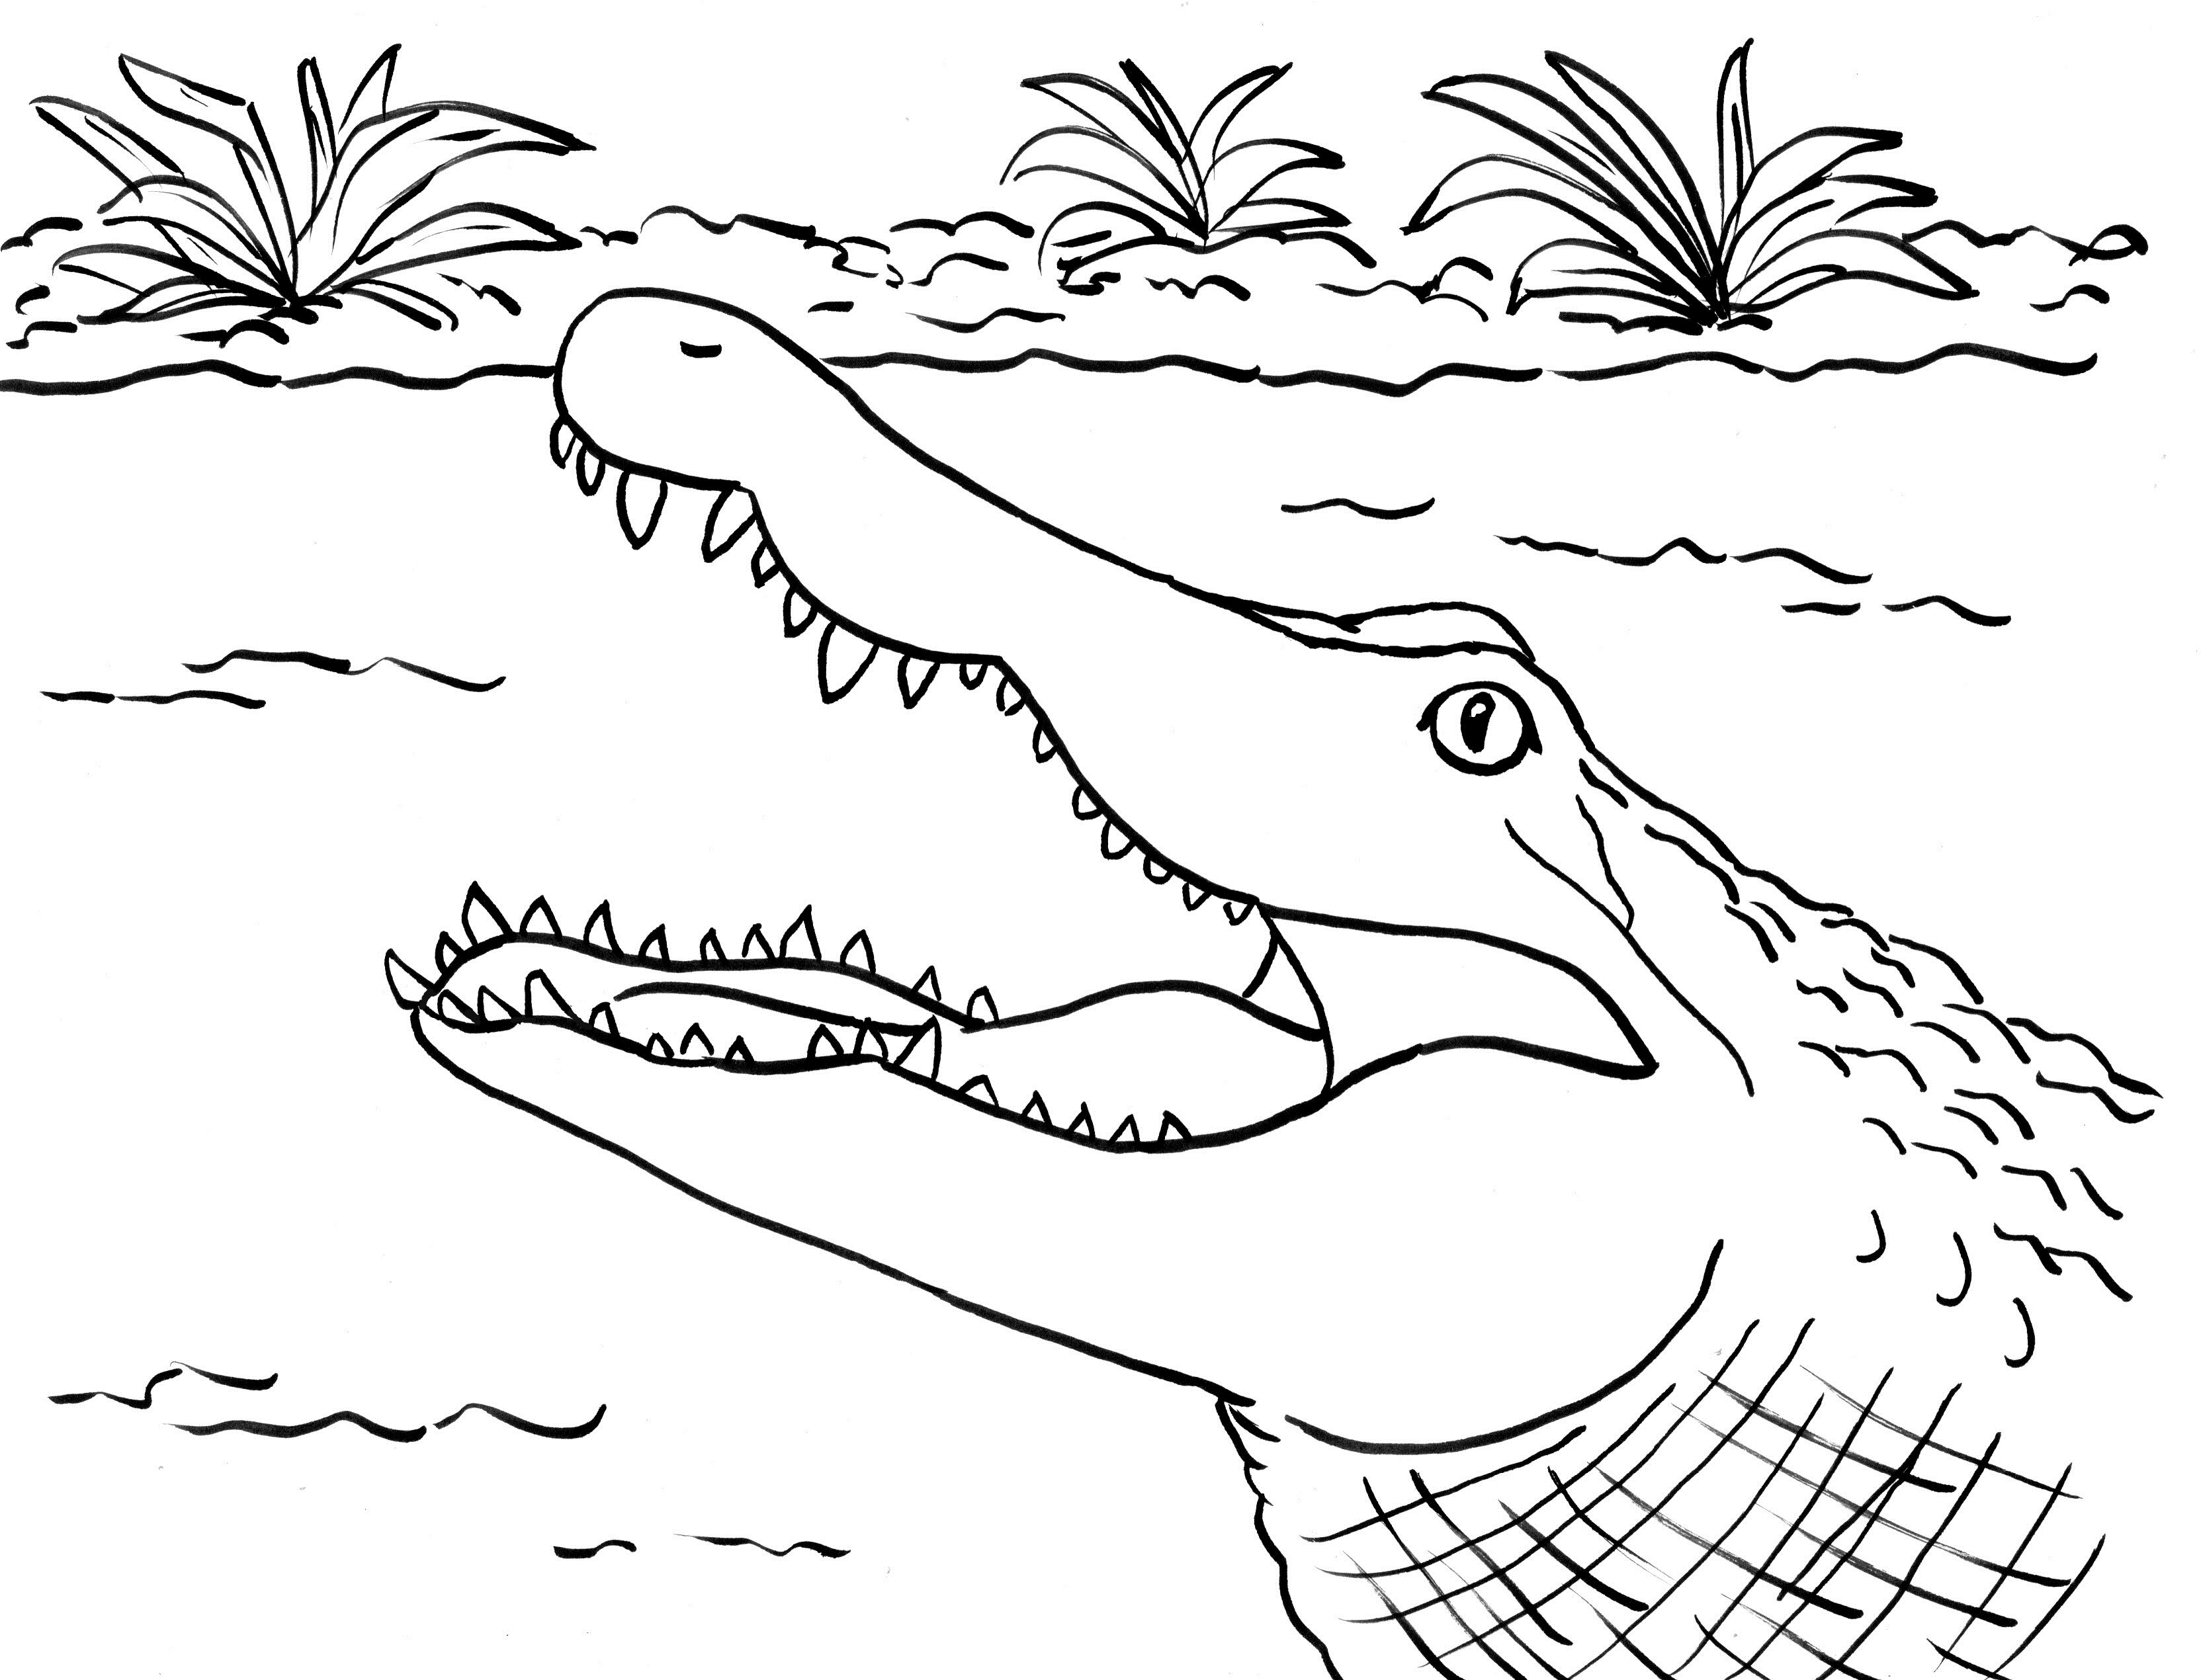 crocodile coloring pages to print crocodiles free colouring pages coloring pages crocodile print to